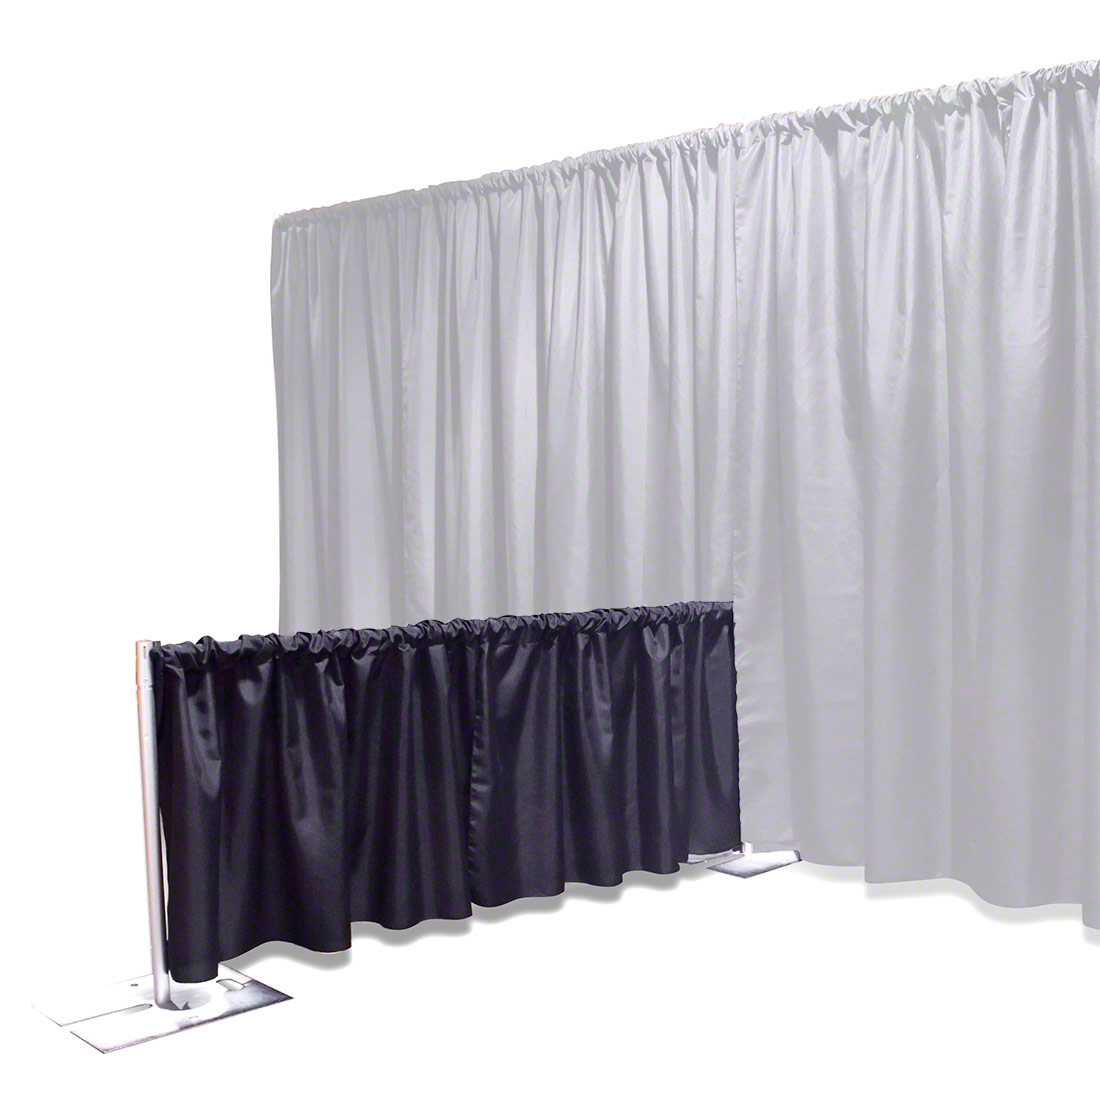 and pipe distributor runner red banner carpet step stand repeat format drapes kit backdrop drape